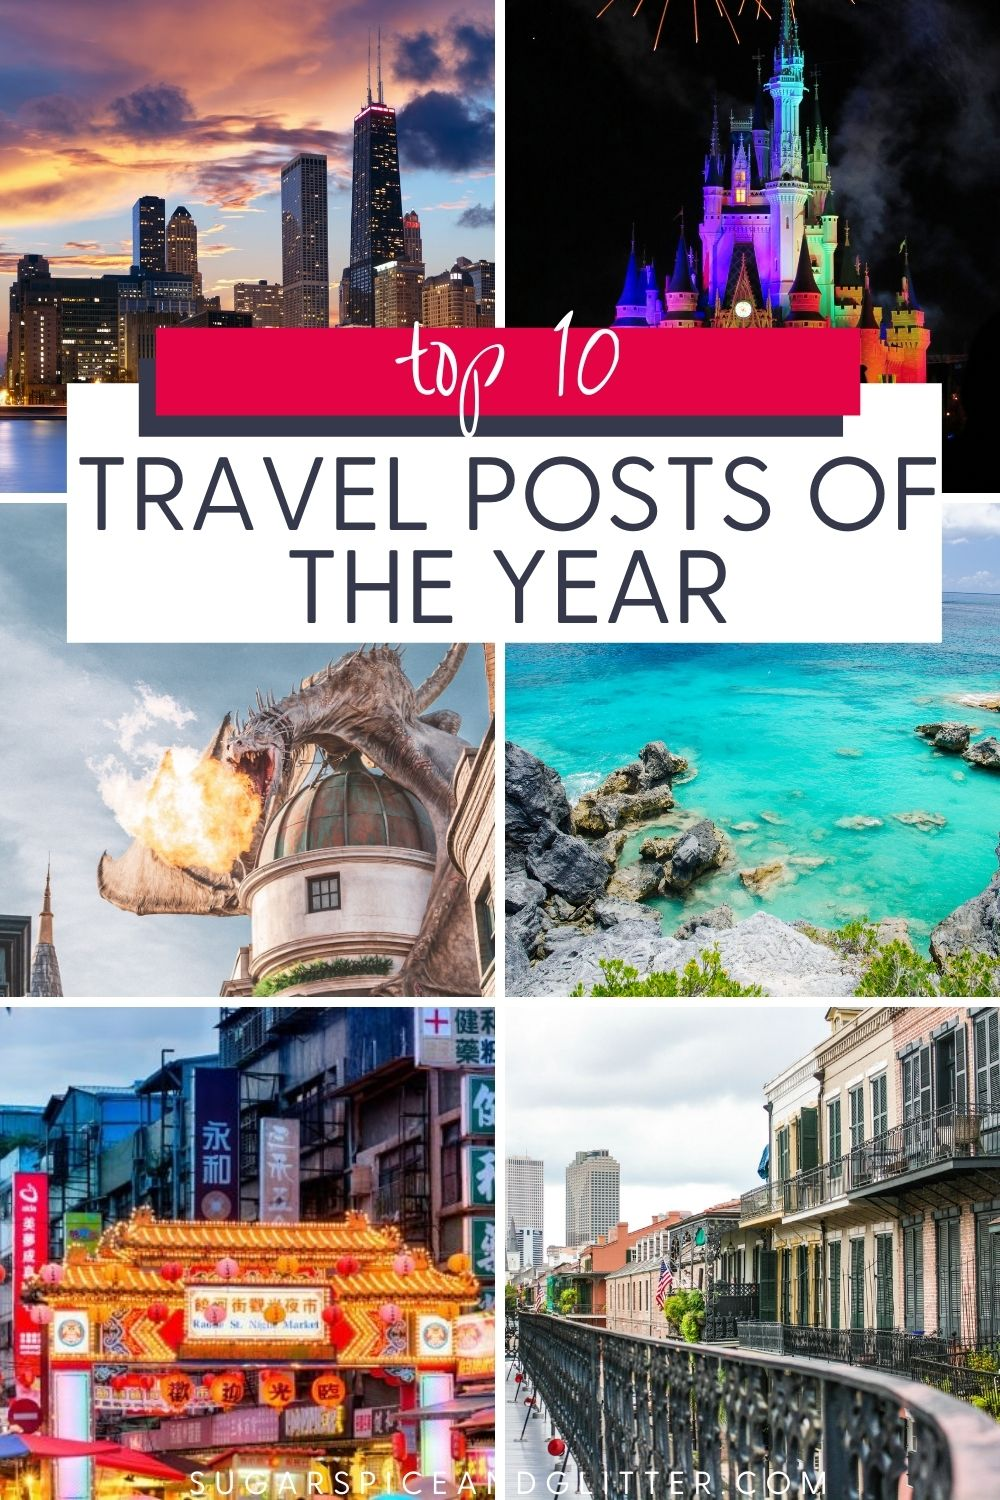 The Top 10 Travel Posts of the Year from Sugar, Spice and Glitter. From theme parks to family road trips, taking us to the other side of the globe and back, these are our readers' favorite travel posts for the year.